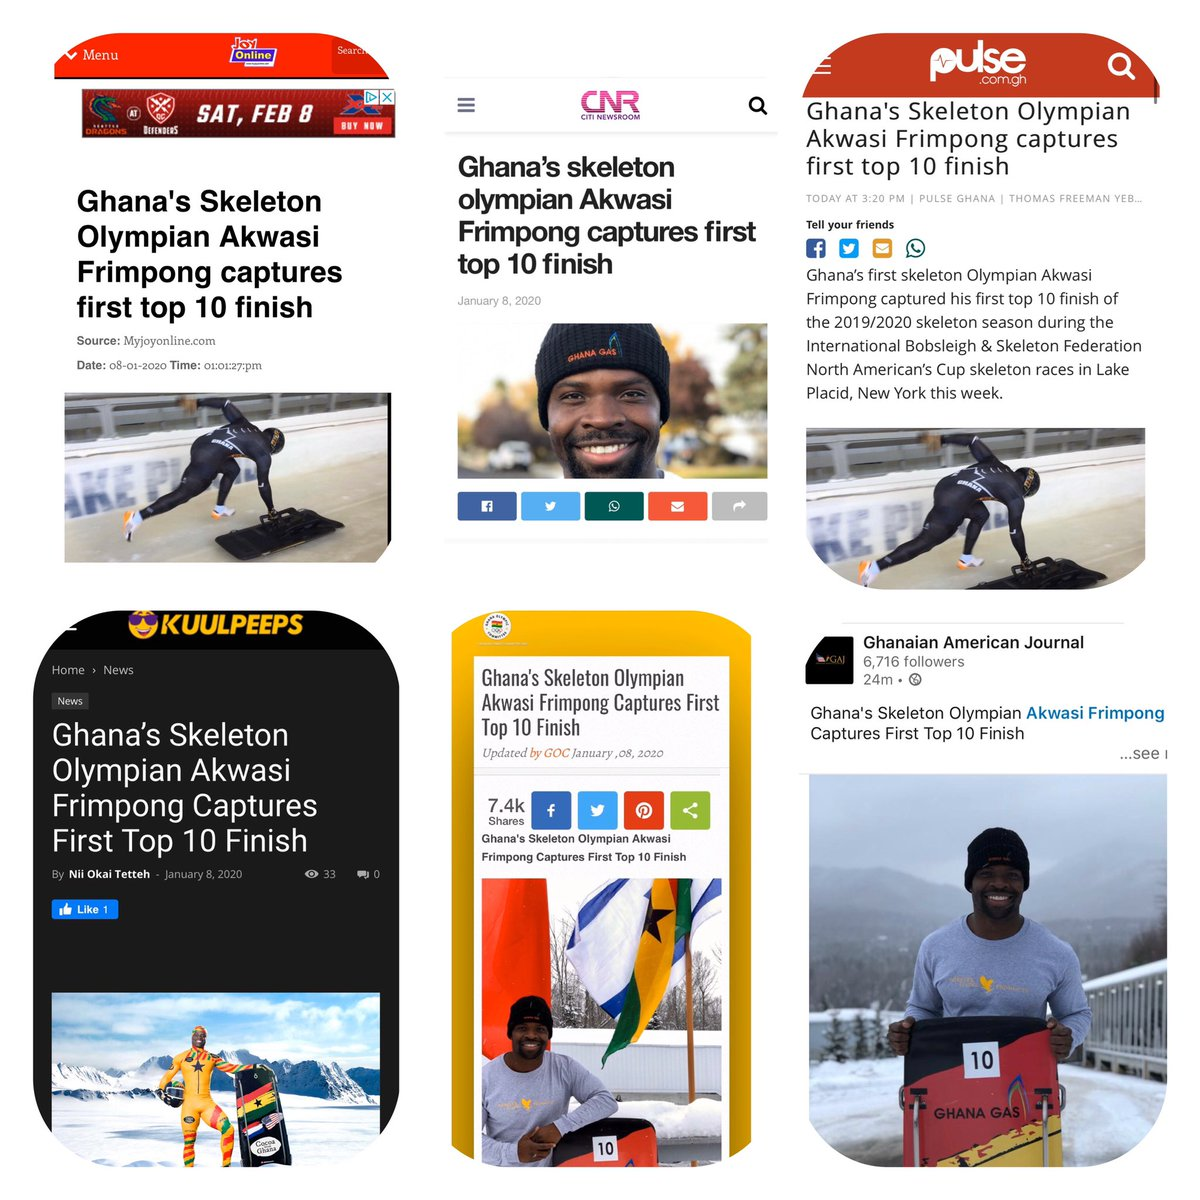 RT @Misss_Quaye: RT @FrimpongAkwasi: Grateful to the media outfits in #Ghana  who continue to share our efforts as we go headfirst on ice internationally to bring the message of #hope to young Ghanaians chasing their dreams!#skeletonsport @IBSFs…pic.twitter.com/SDjpsWkwiL